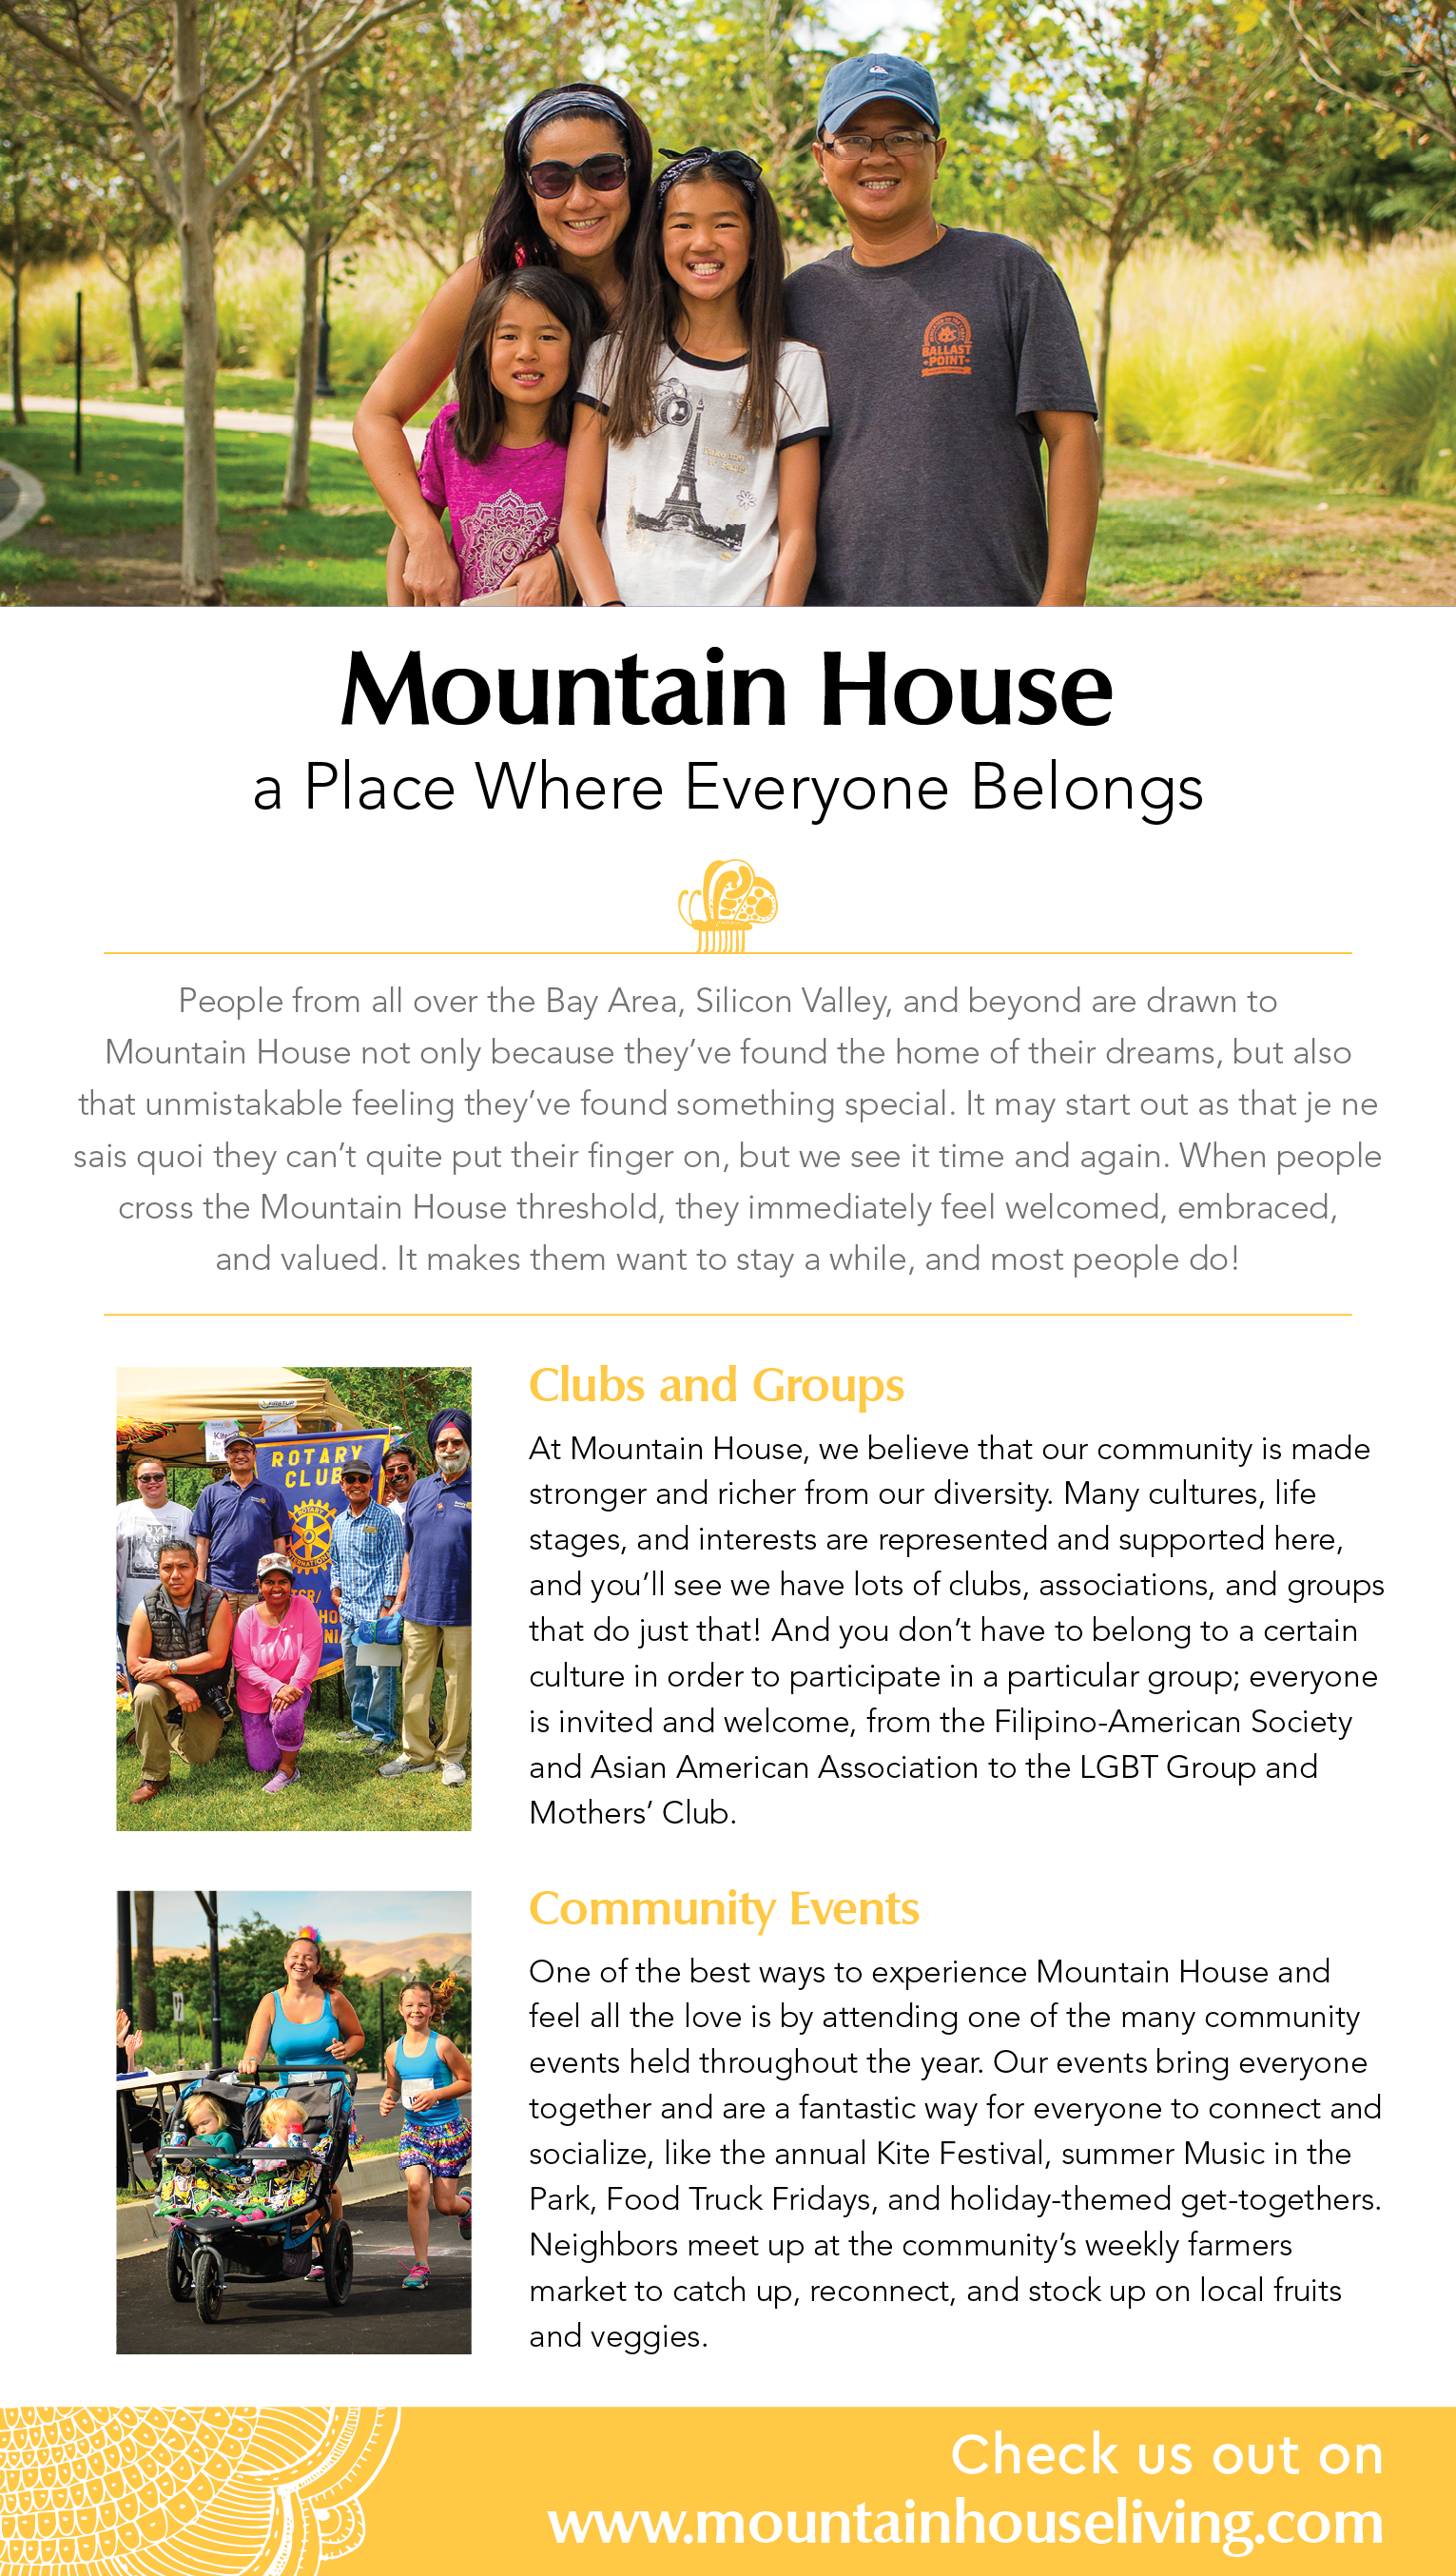 At Mountain House, everyone is welcome. Read all about the clubs, groups, and community events that help make residents feel included and at home!